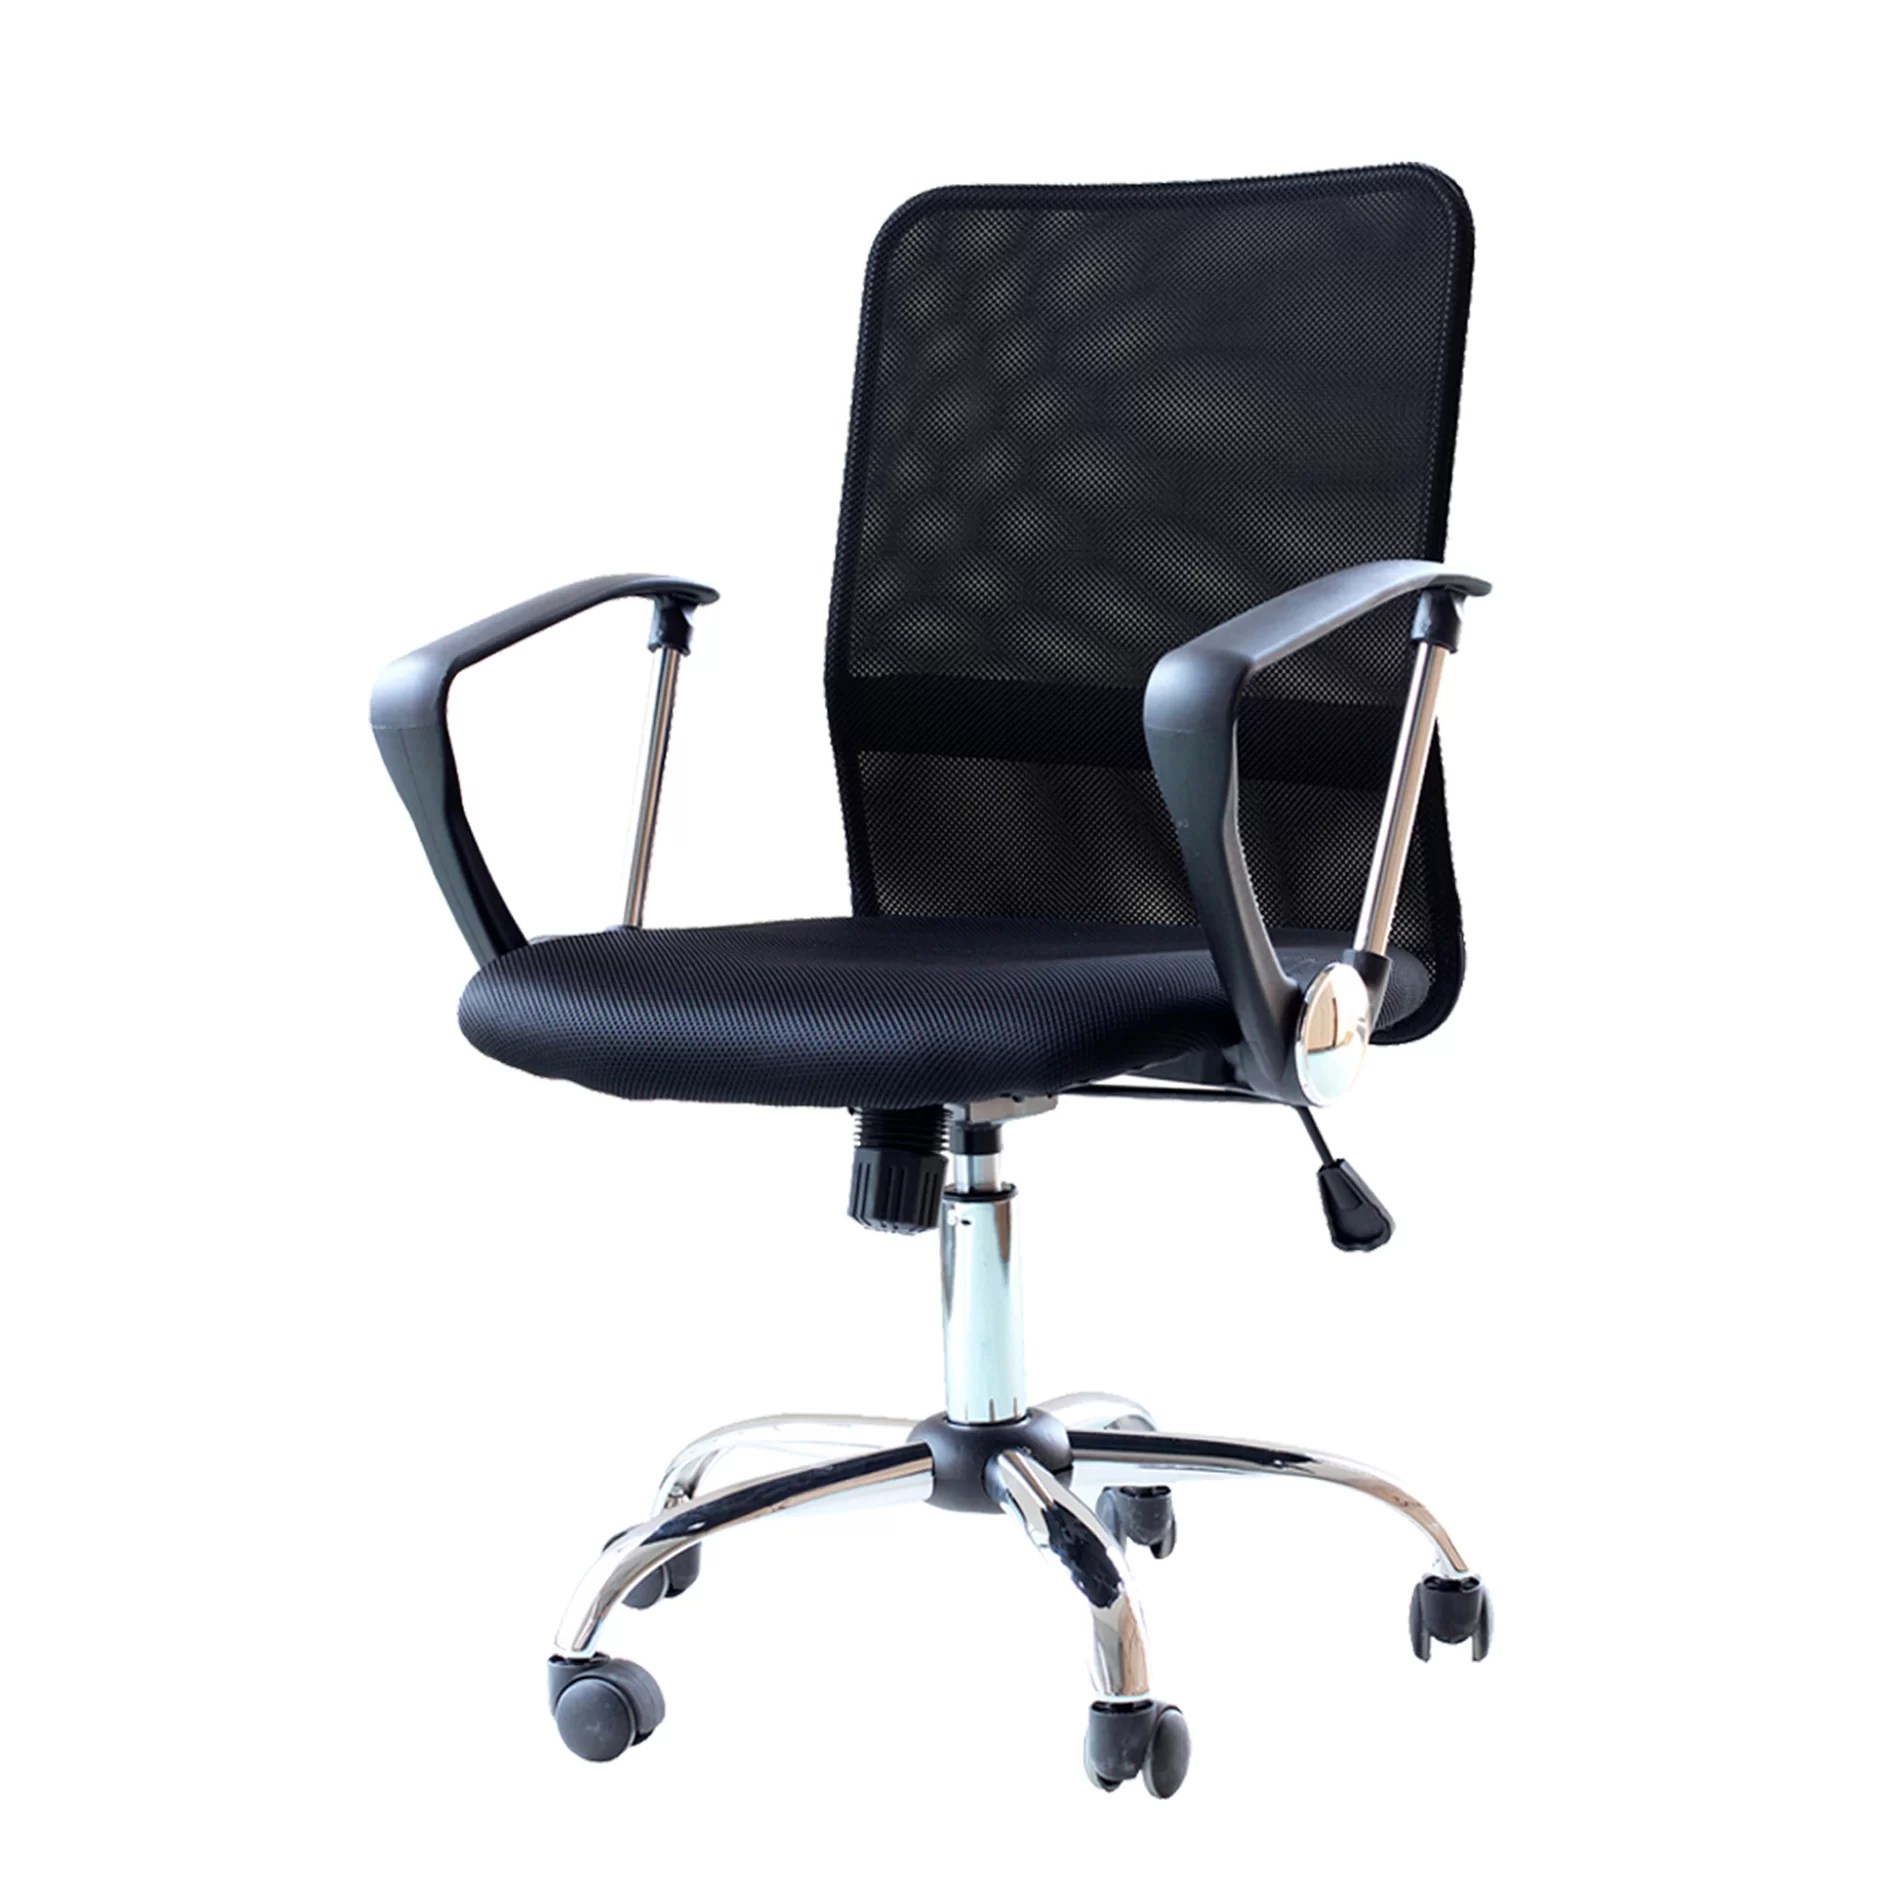 Ergonomic Mesh Chair Idsonlinecorp Ergonomic Adjustable Mid Back Mesh Desk